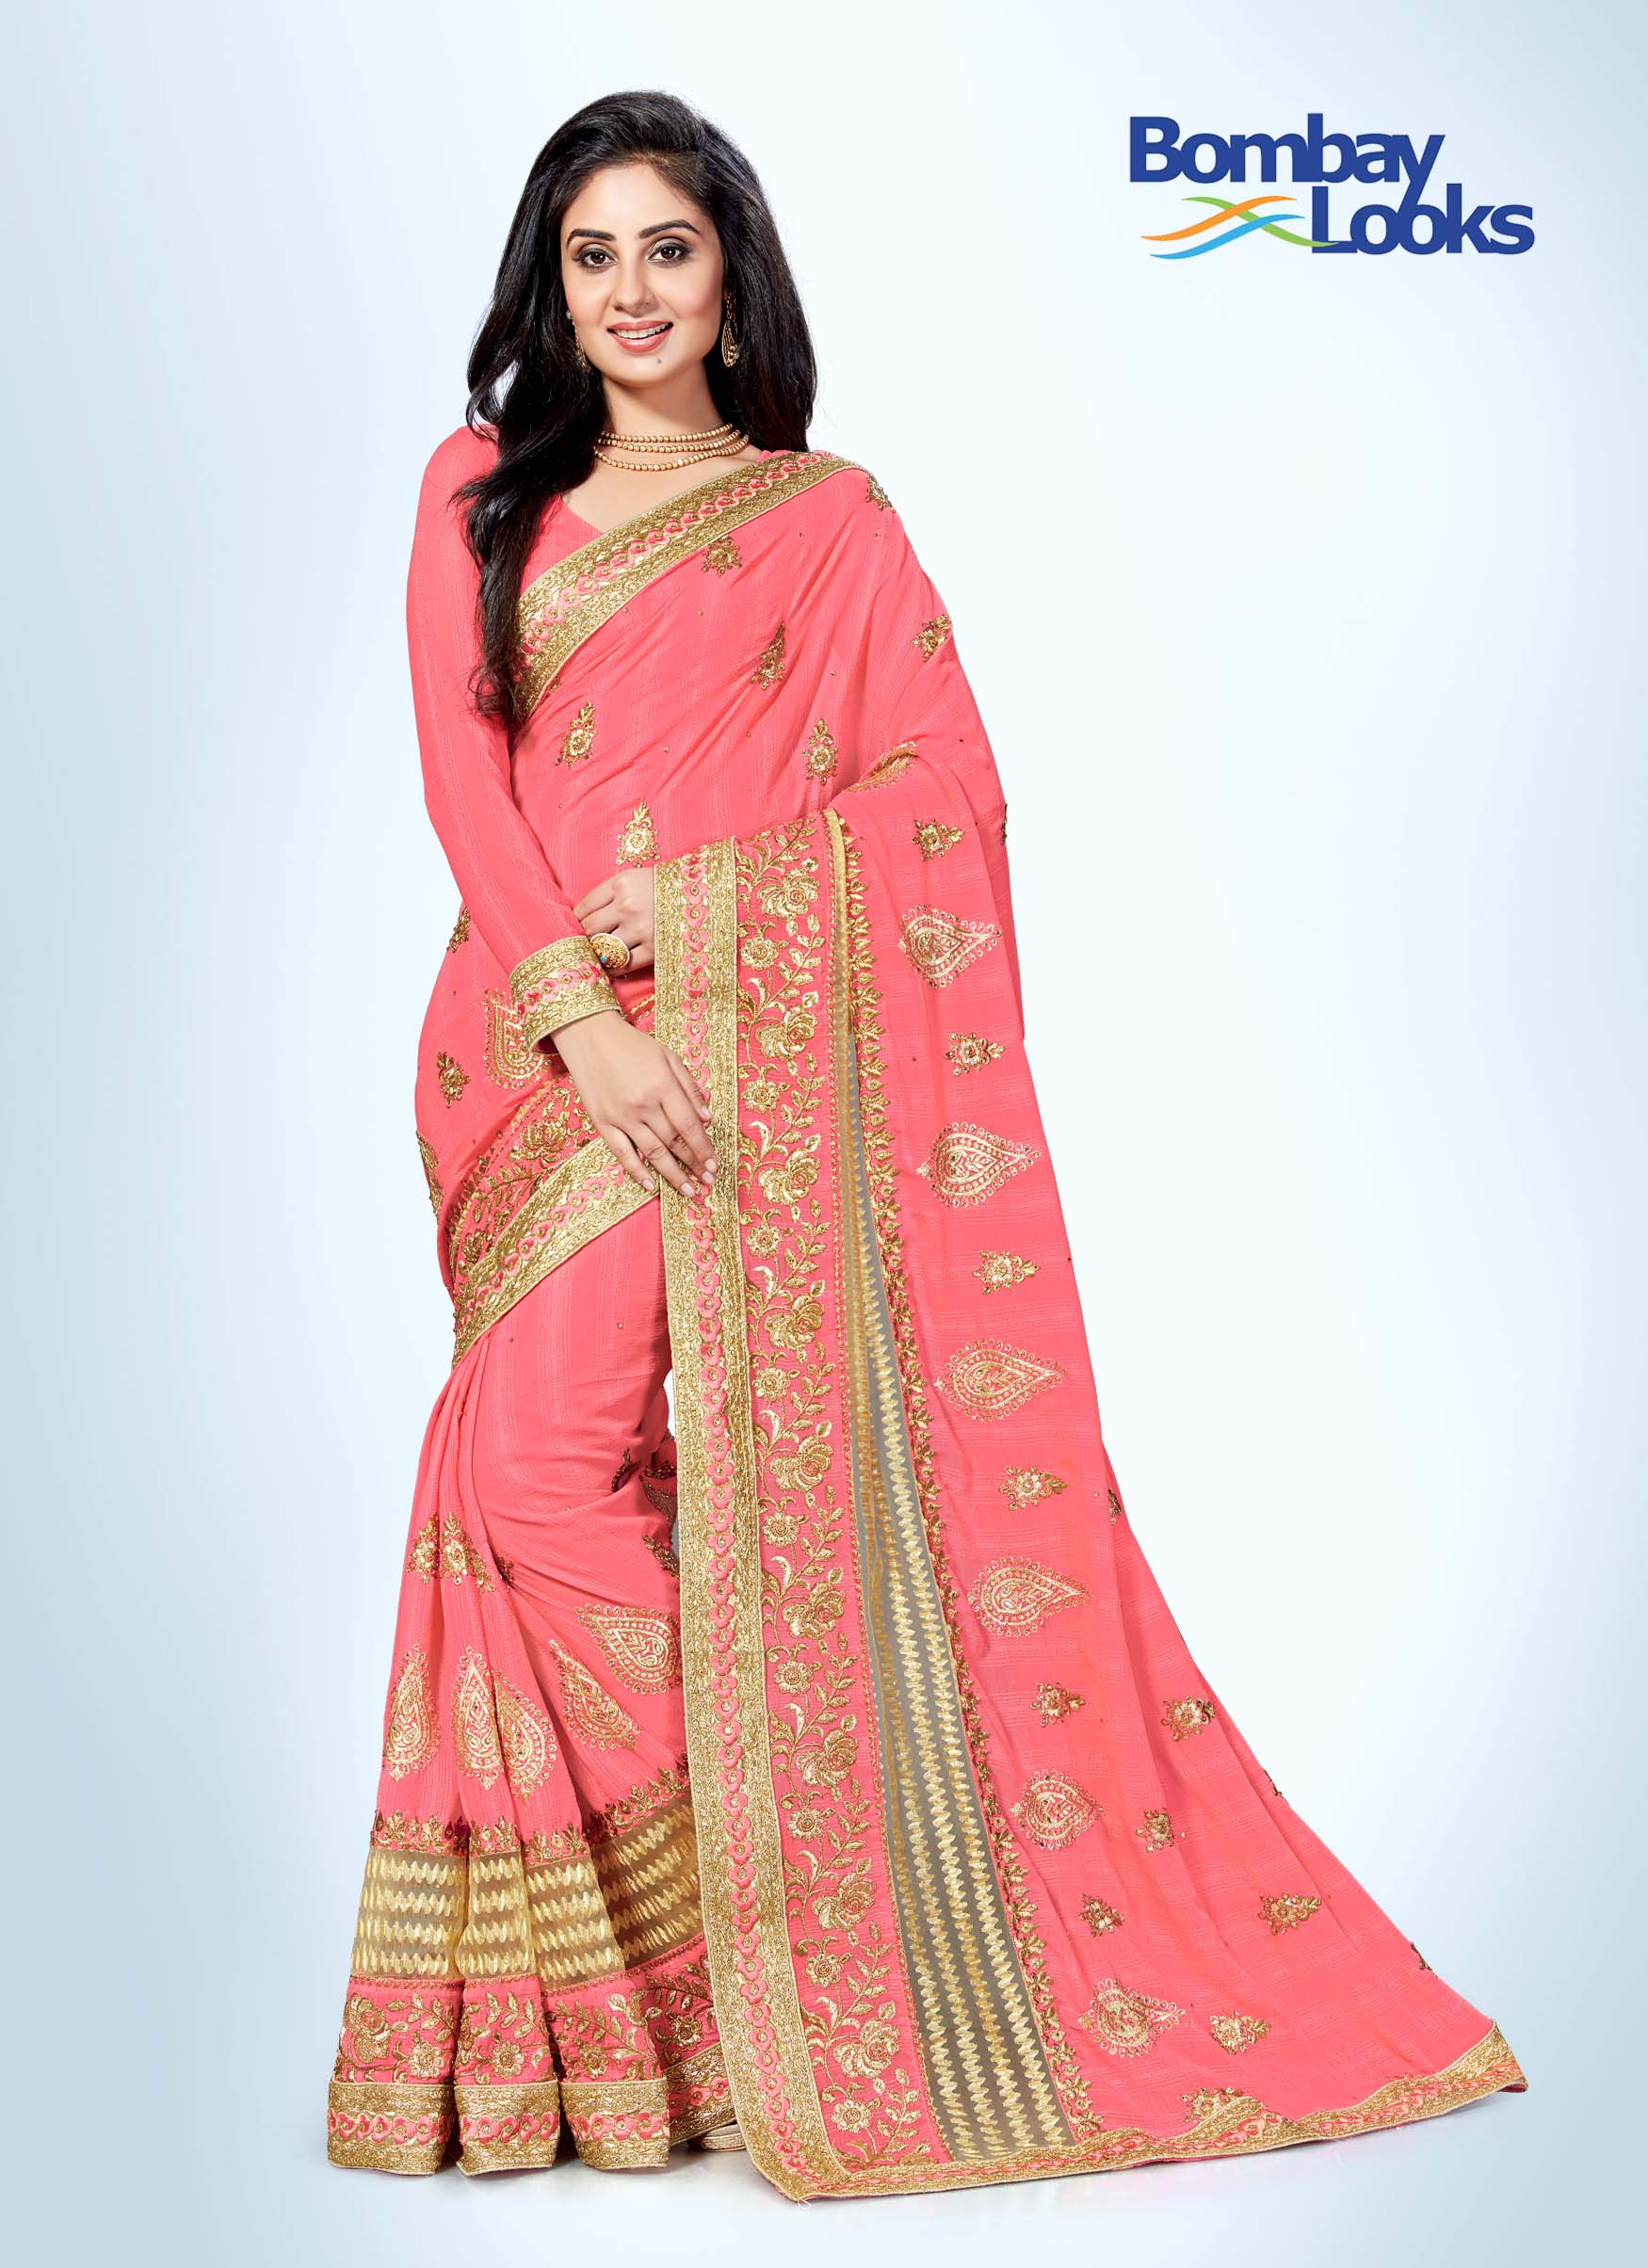 Candy floss pink saree with heavy gold embroidery